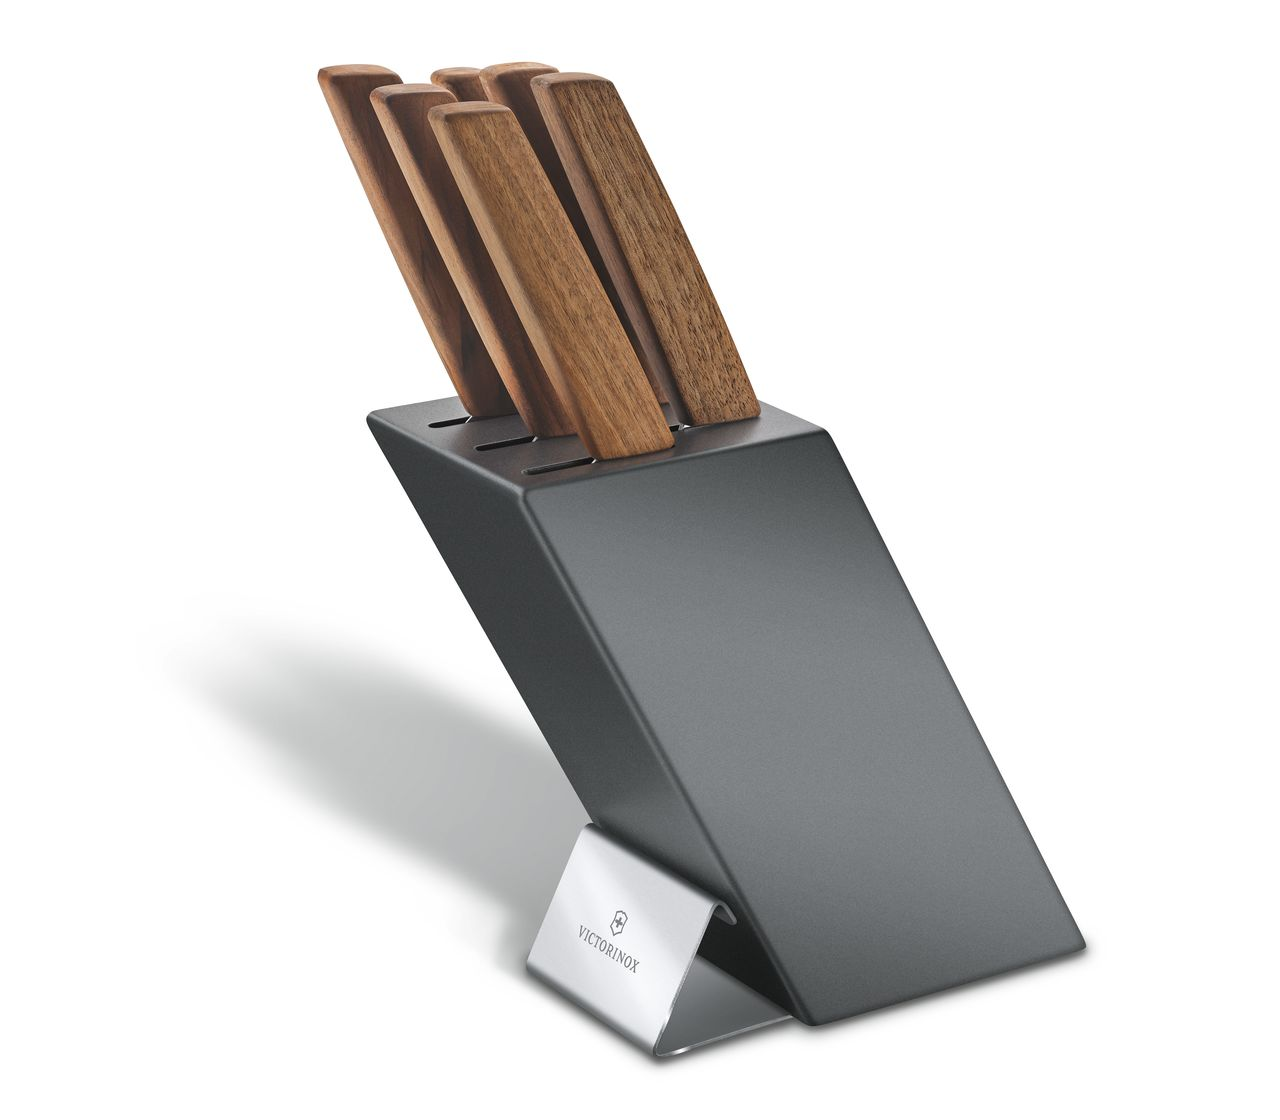 Swiss Modern Knife Block, 6 Pieces-6.7186.6